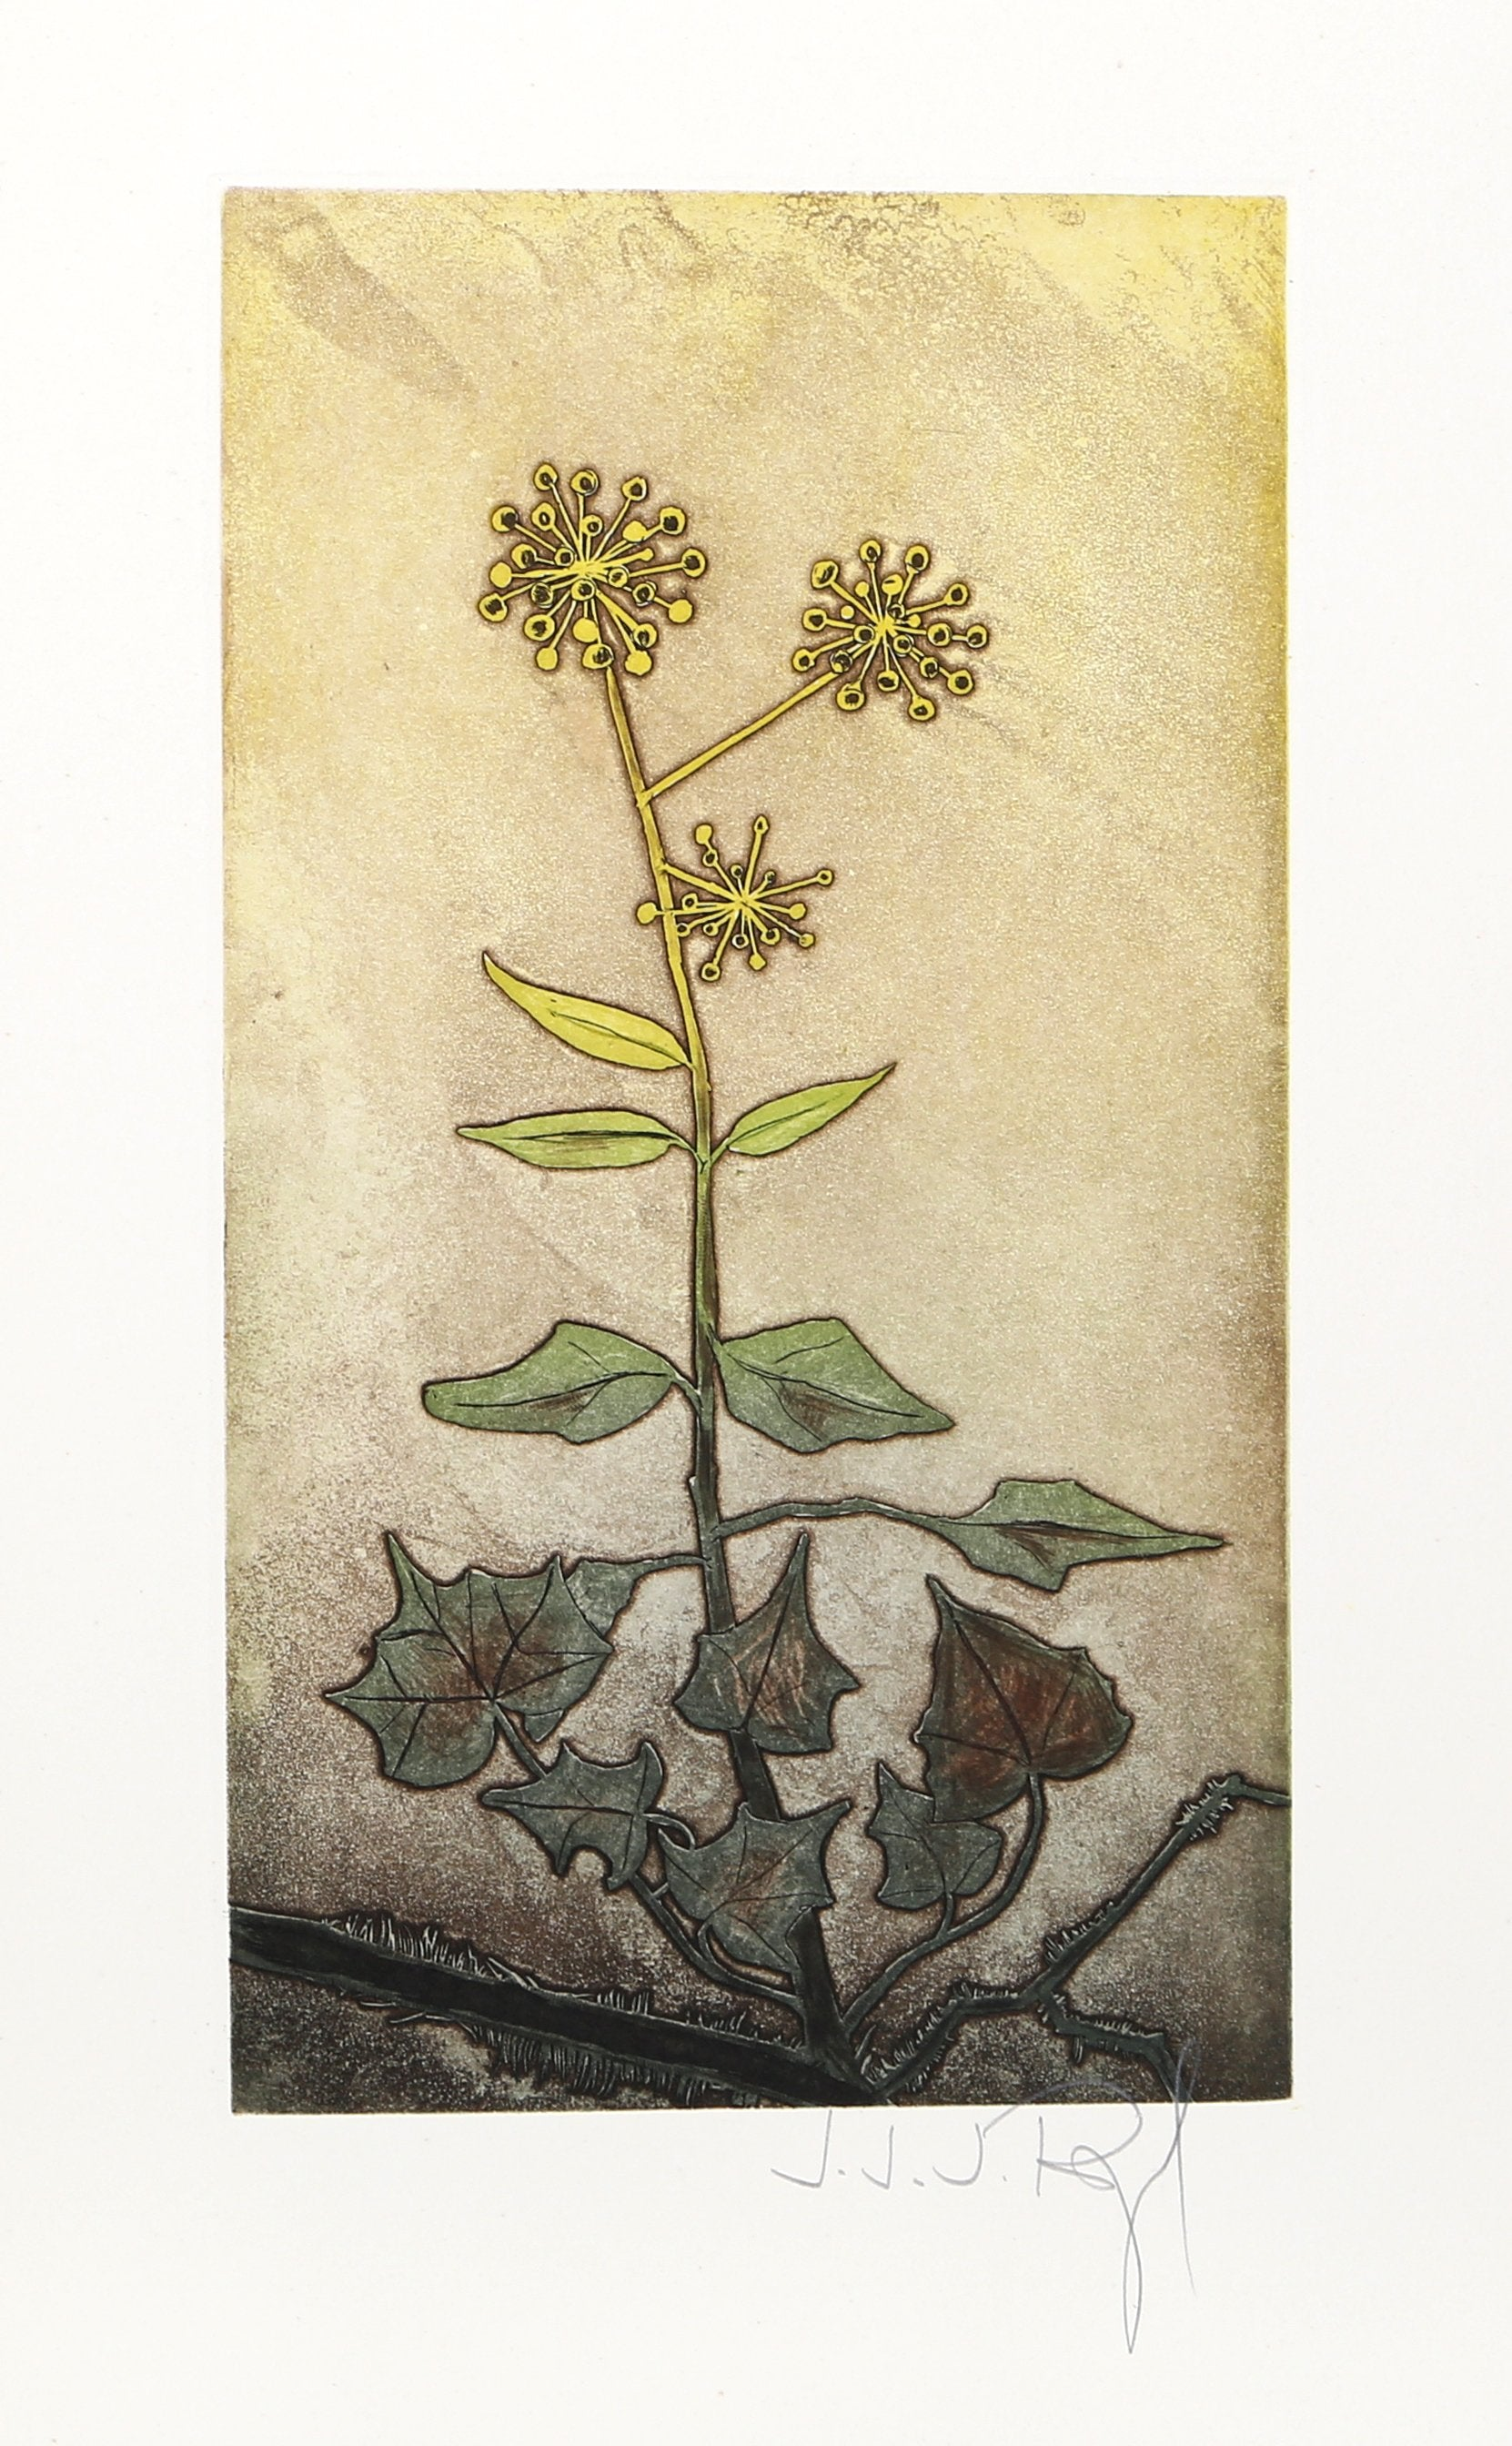 J.J.J. Rigal, Lierre Admirable from the Herbier Portfolio Etching - RoGallery